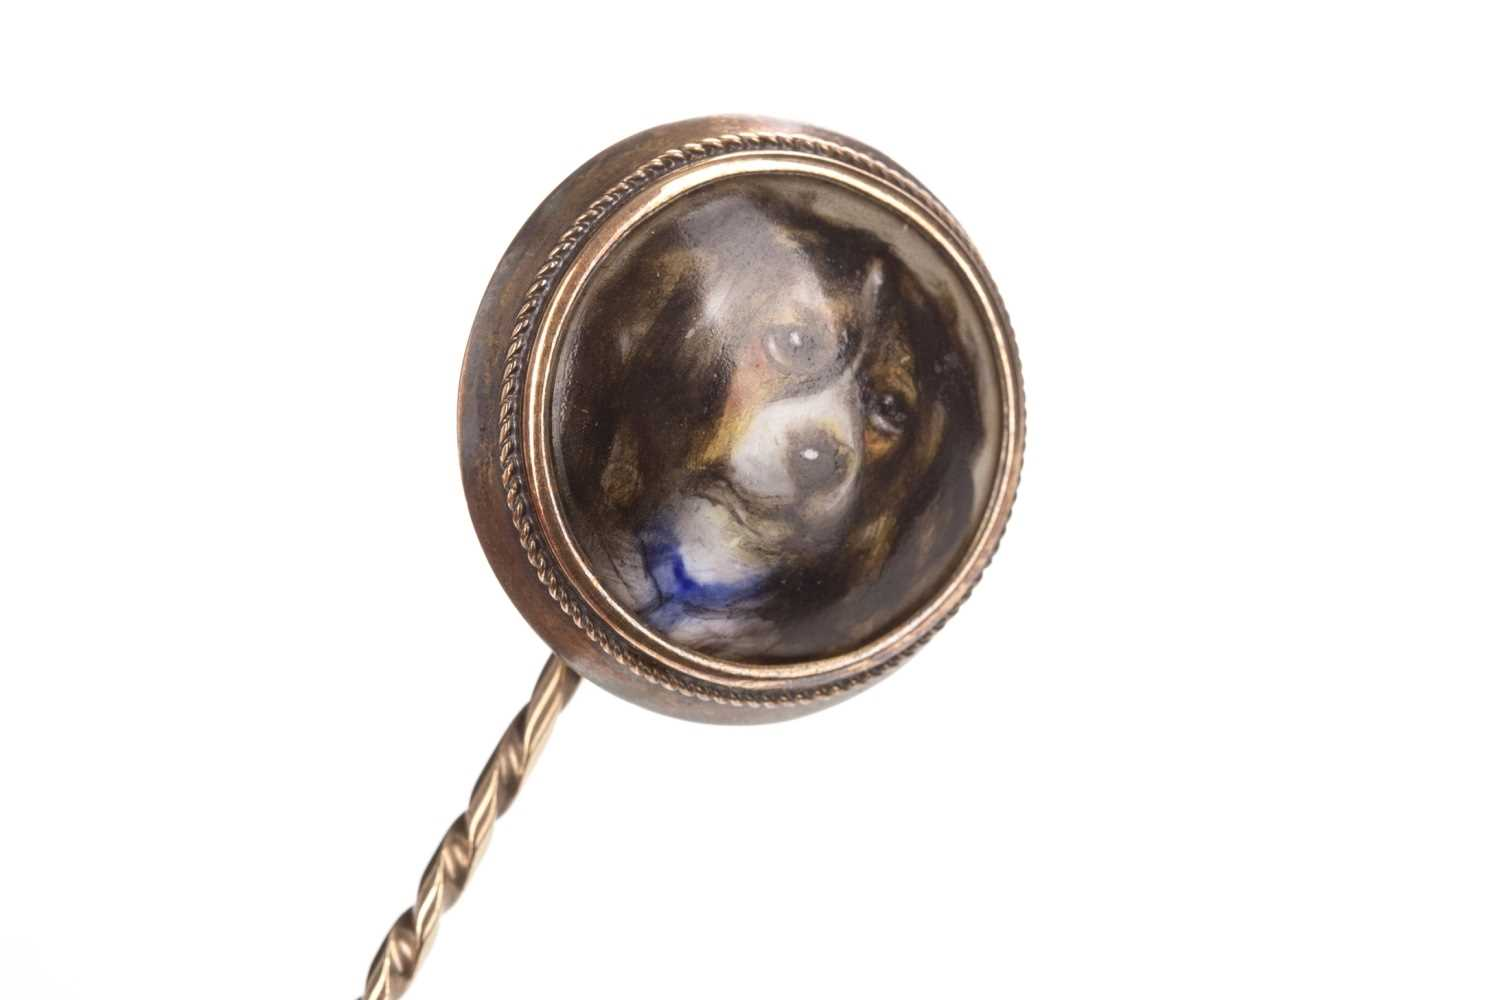 Lot 1302-RARE: KING CHARLES CAVALIER TRICOLOUR SPANIEL PORTRAIT PIN BY WILLIAM ESSEX